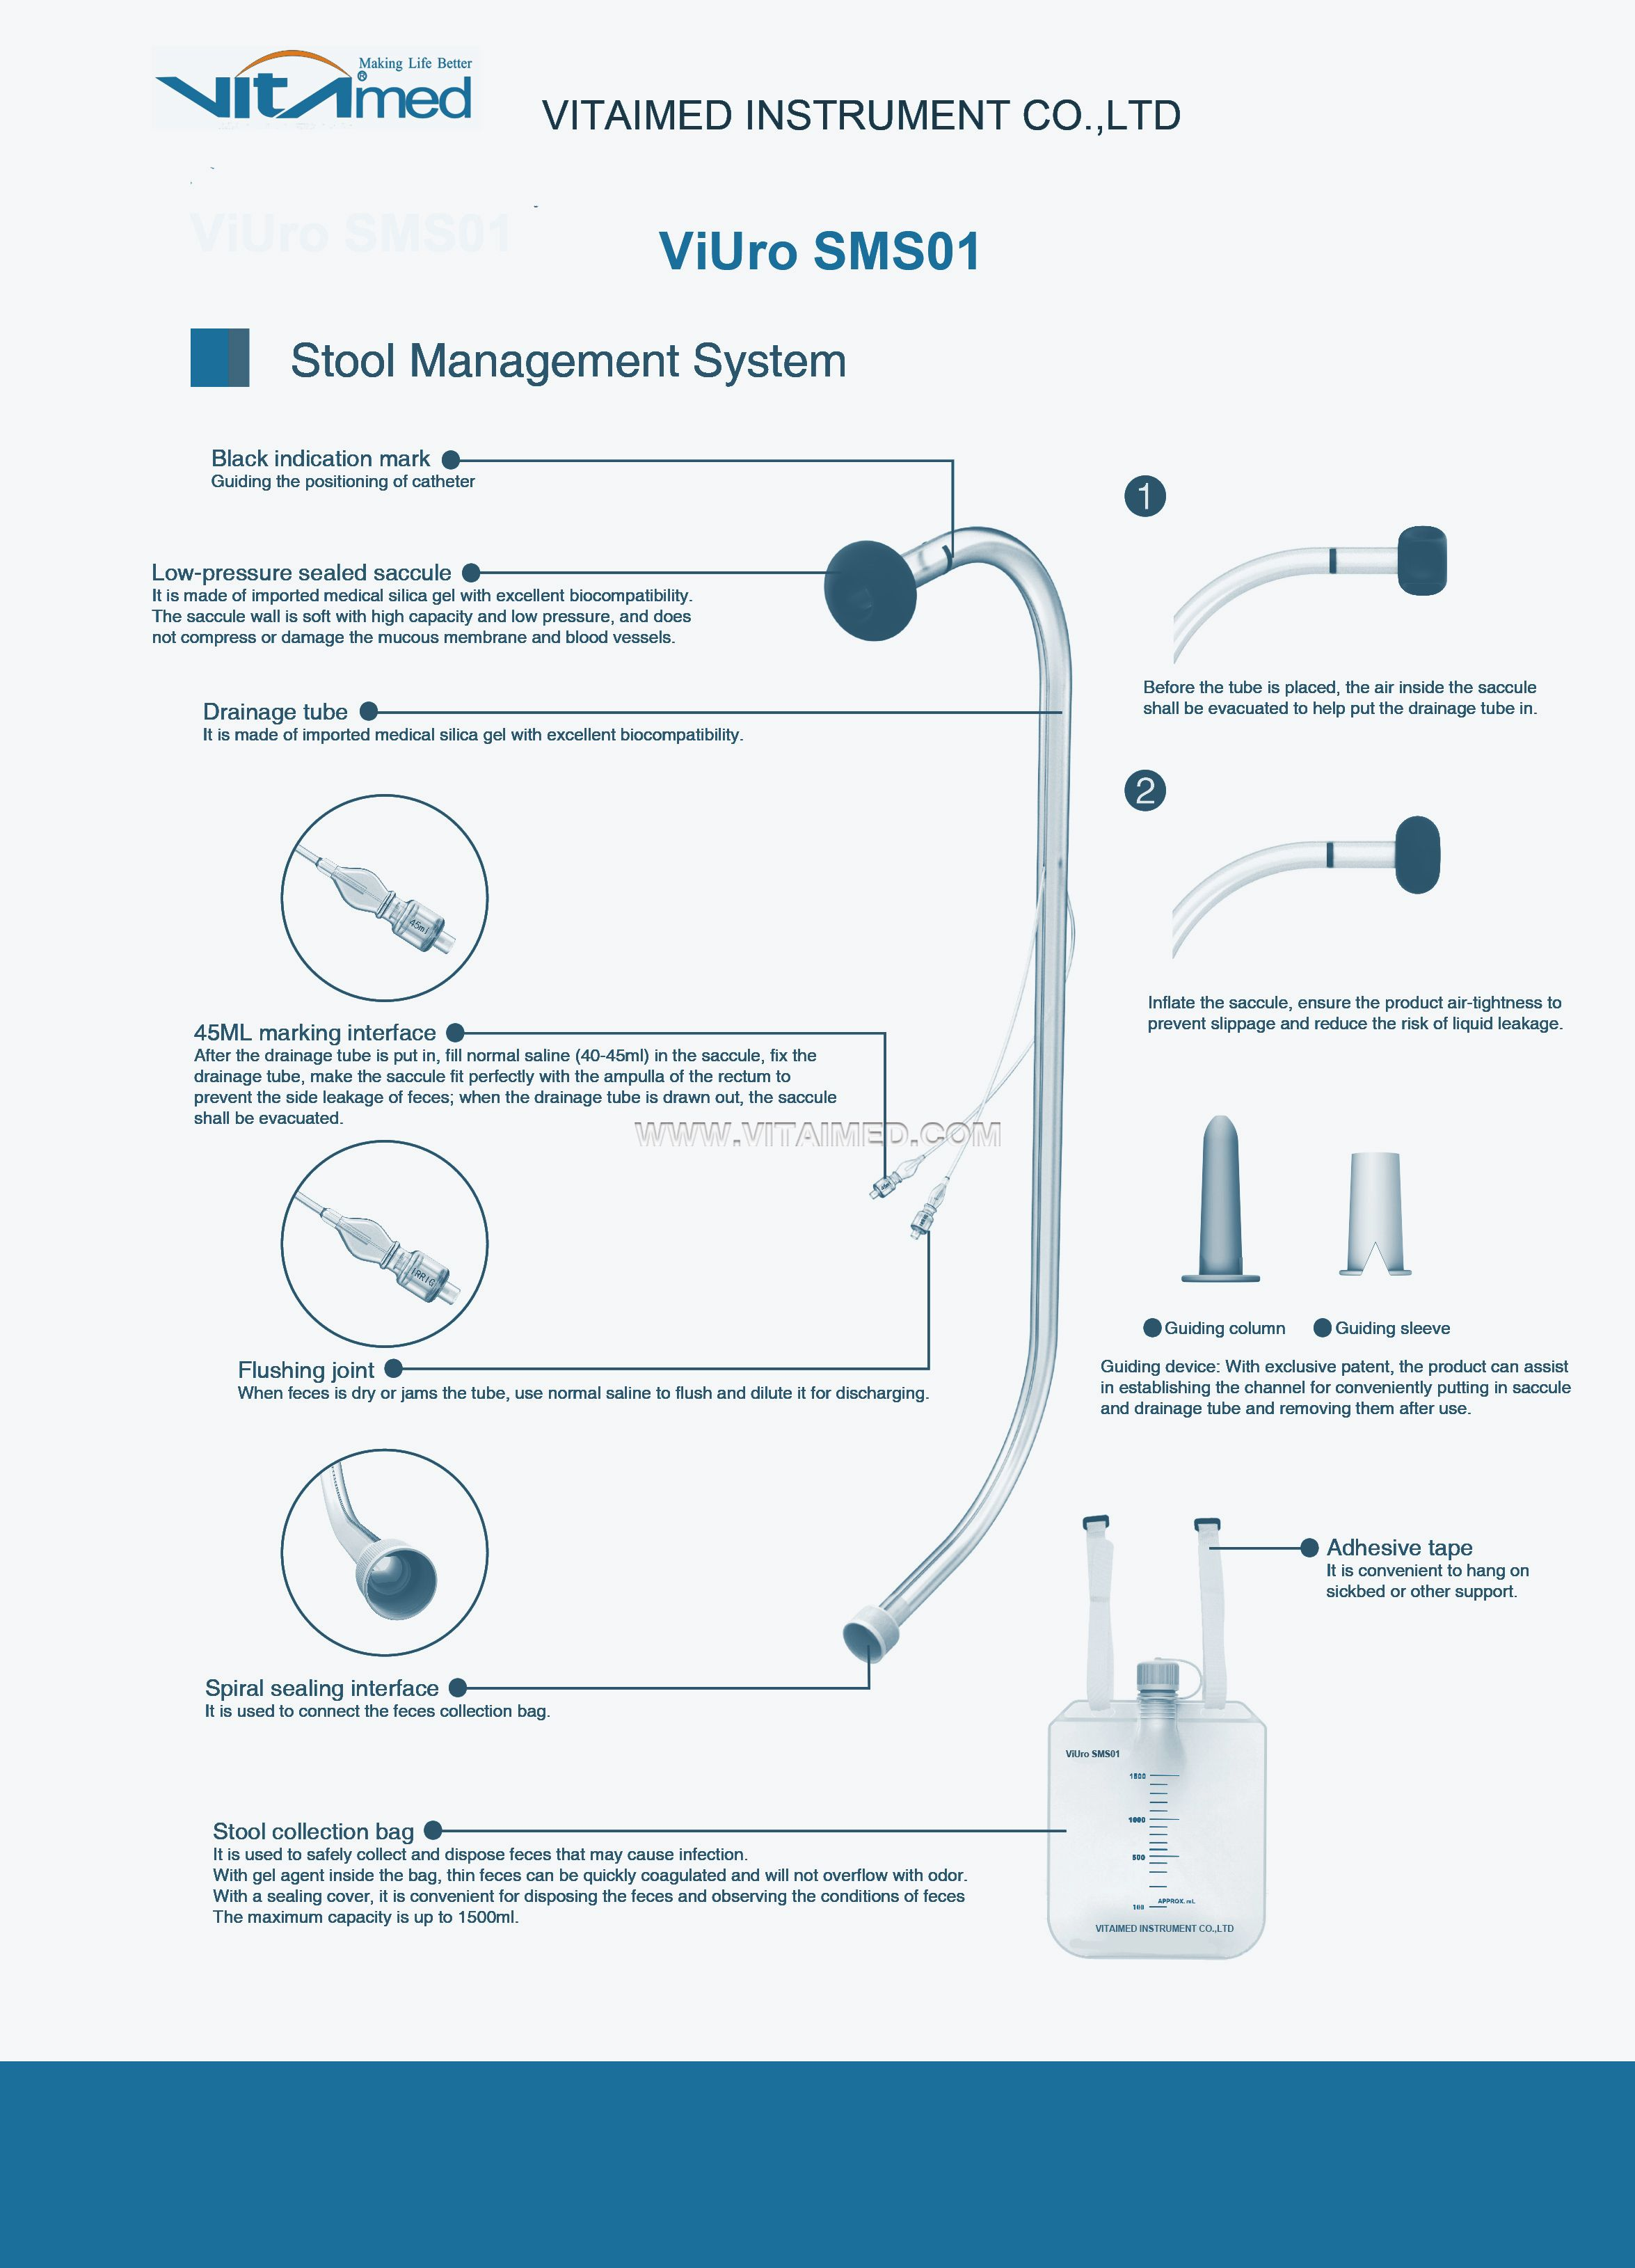 Stool Management System SMS01